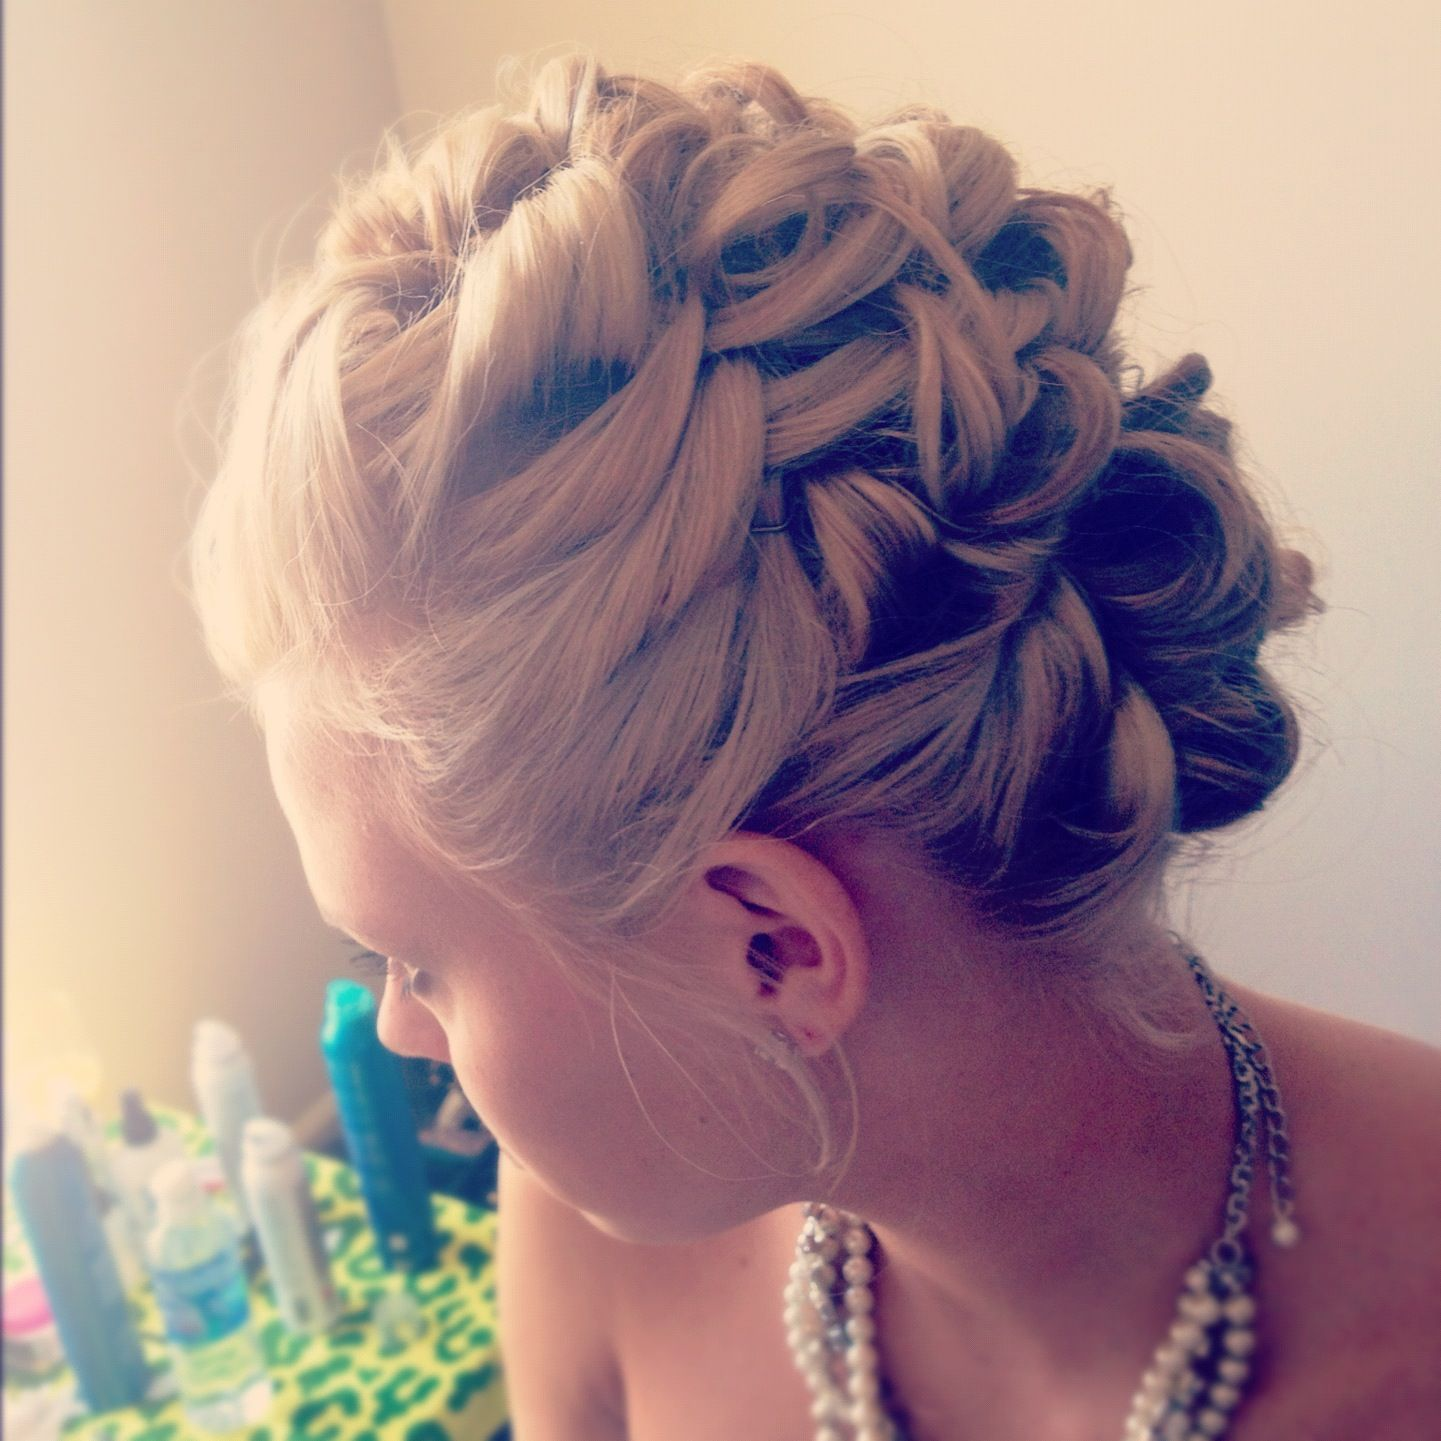 hair by josie at sine qua non west town #bridal #updo#hair